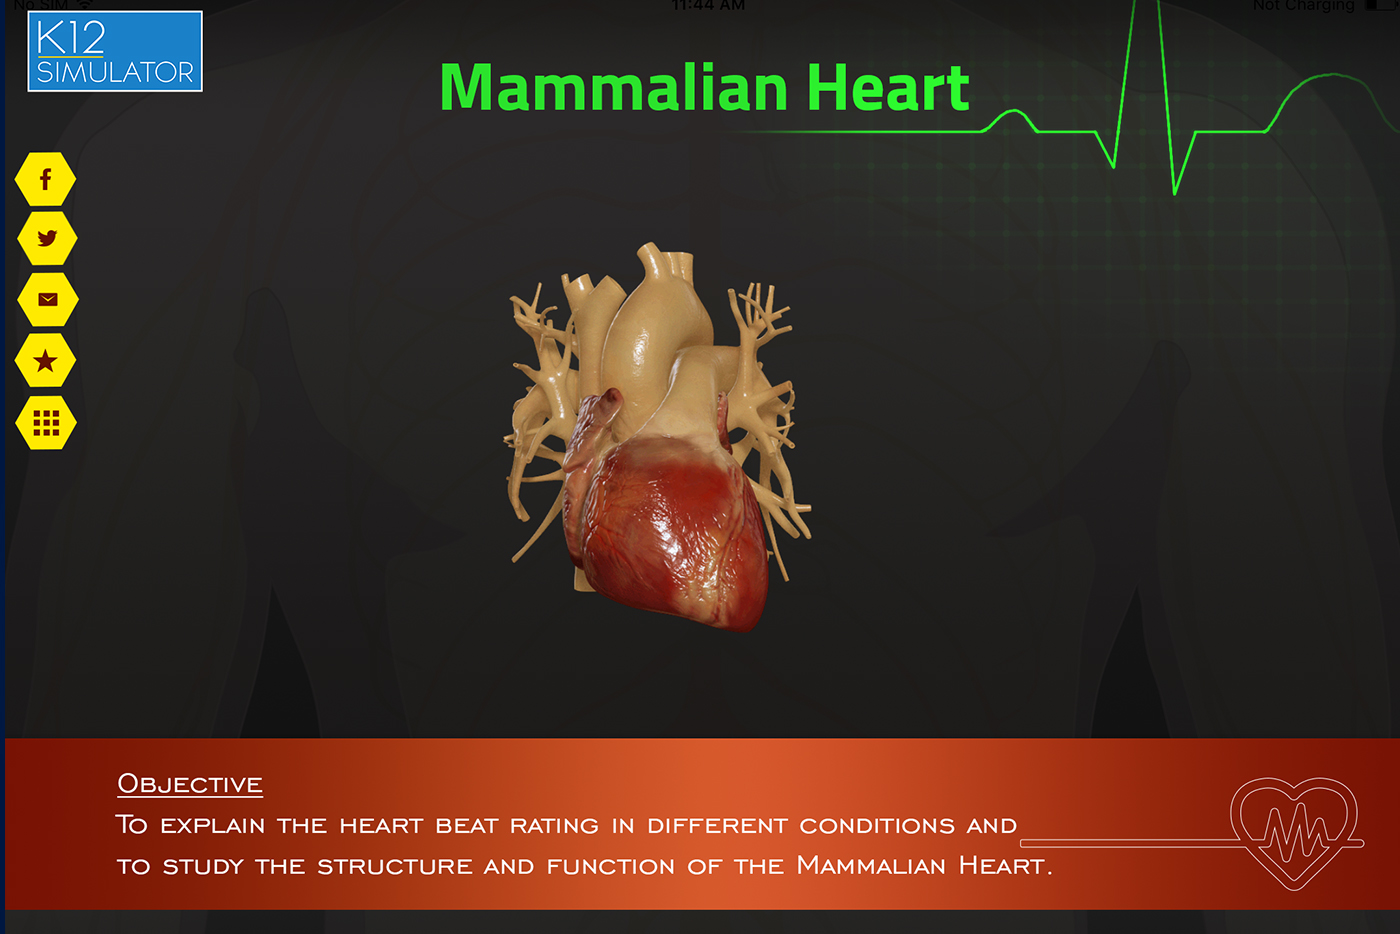 mammalian heart 1 the human heart, like that of all mammals, has two atria and two ventricles blood enters the heart by the atria and leaves from the ventricles.